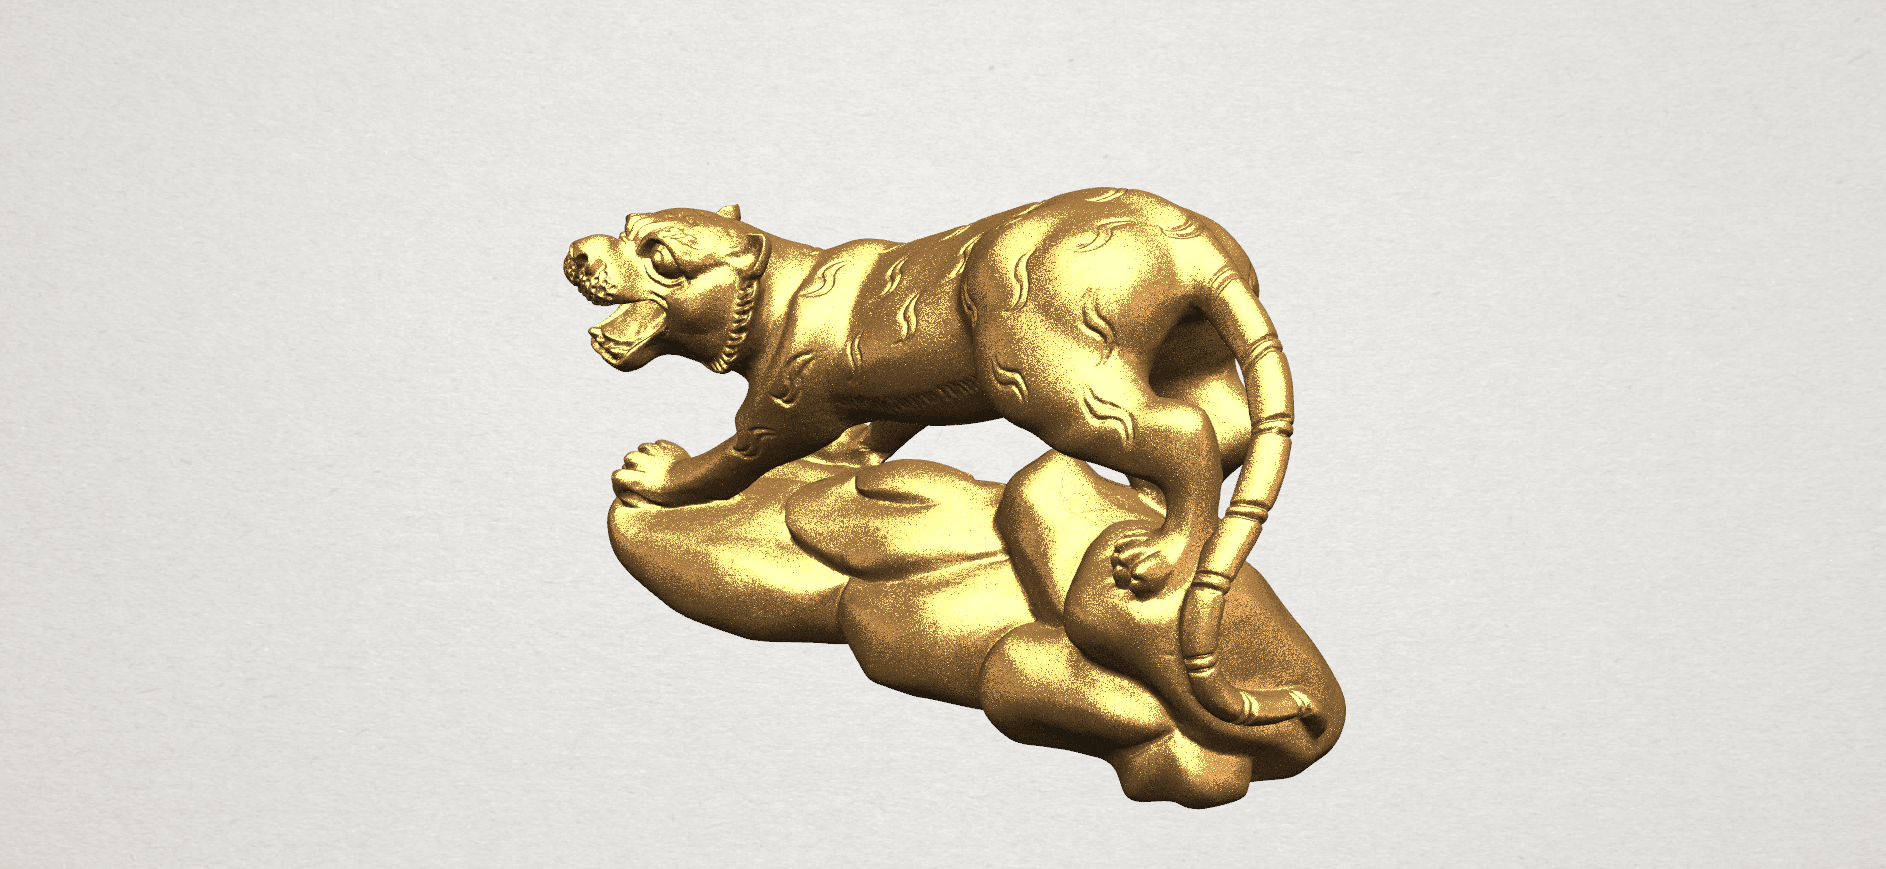 Chinese Horoscope03-01.png Download free STL file Chinese Horoscope 03 Tiger • 3D printer template, GeorgesNikkei